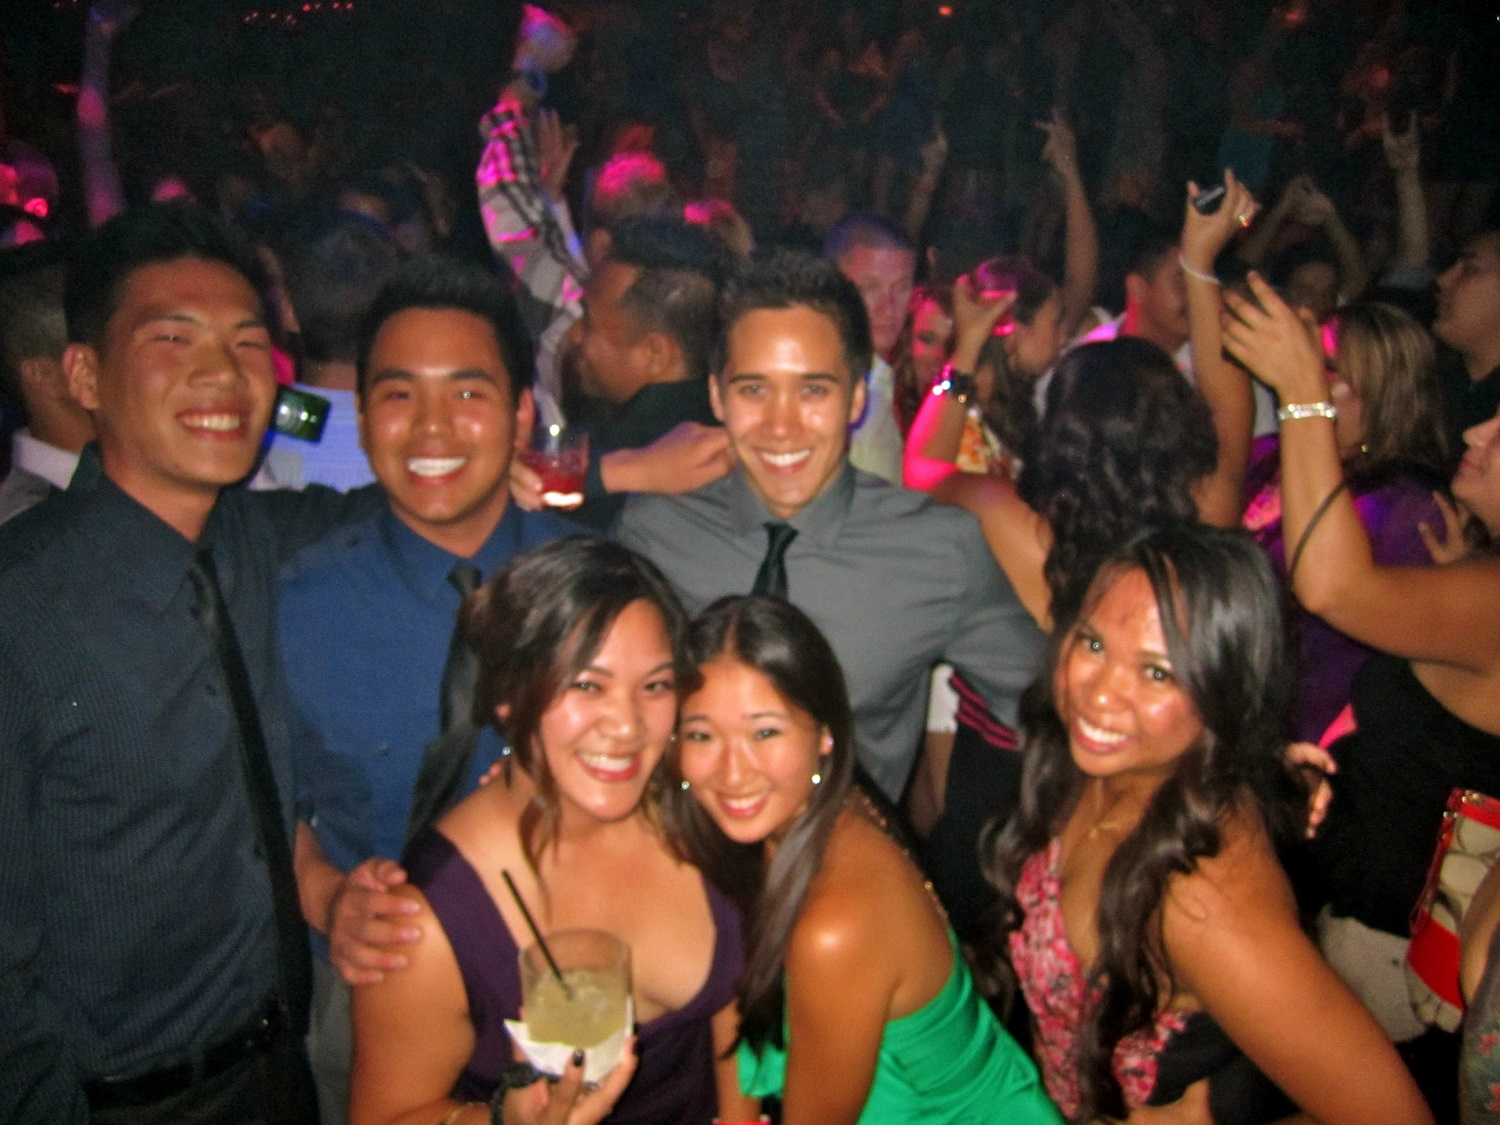 TAO NIGHTCLUB - FREE ENTRY - LADIES FREE OPEN BAR - TAO NIGHTCLUB LAS VEGAS